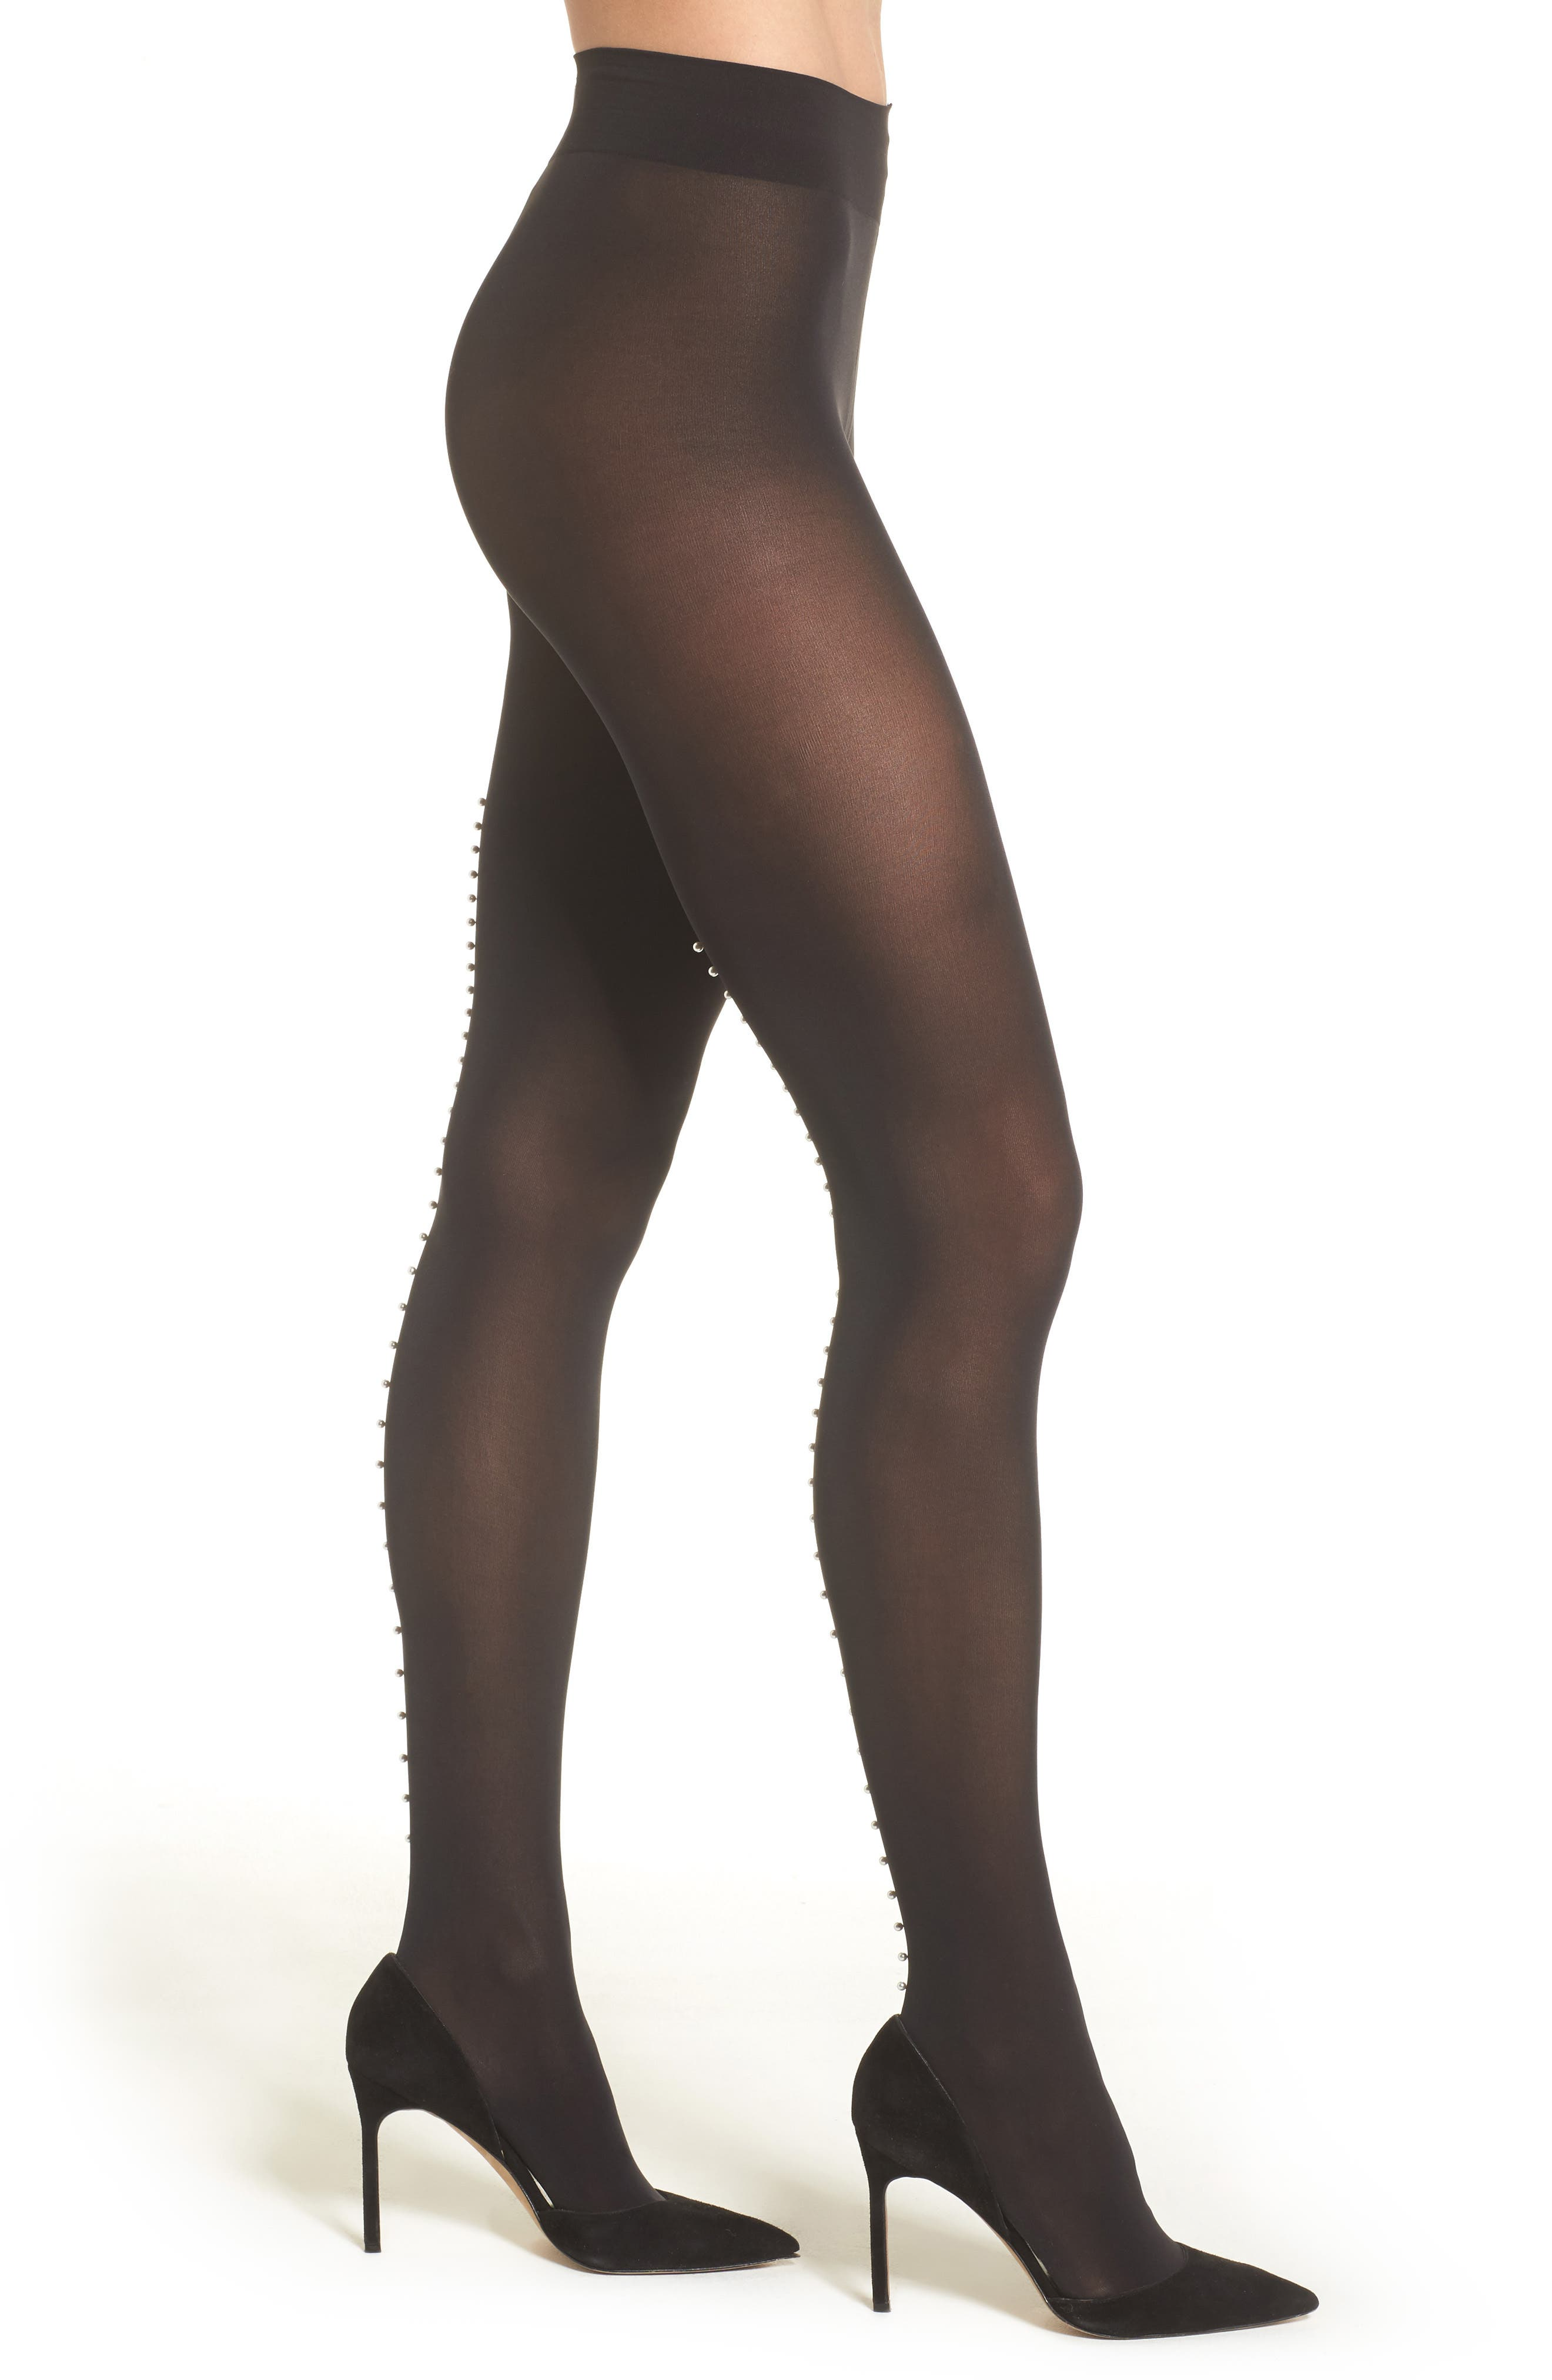 Pearlescent Beaded Tights,                         Main,                         color, Black/ Pearl